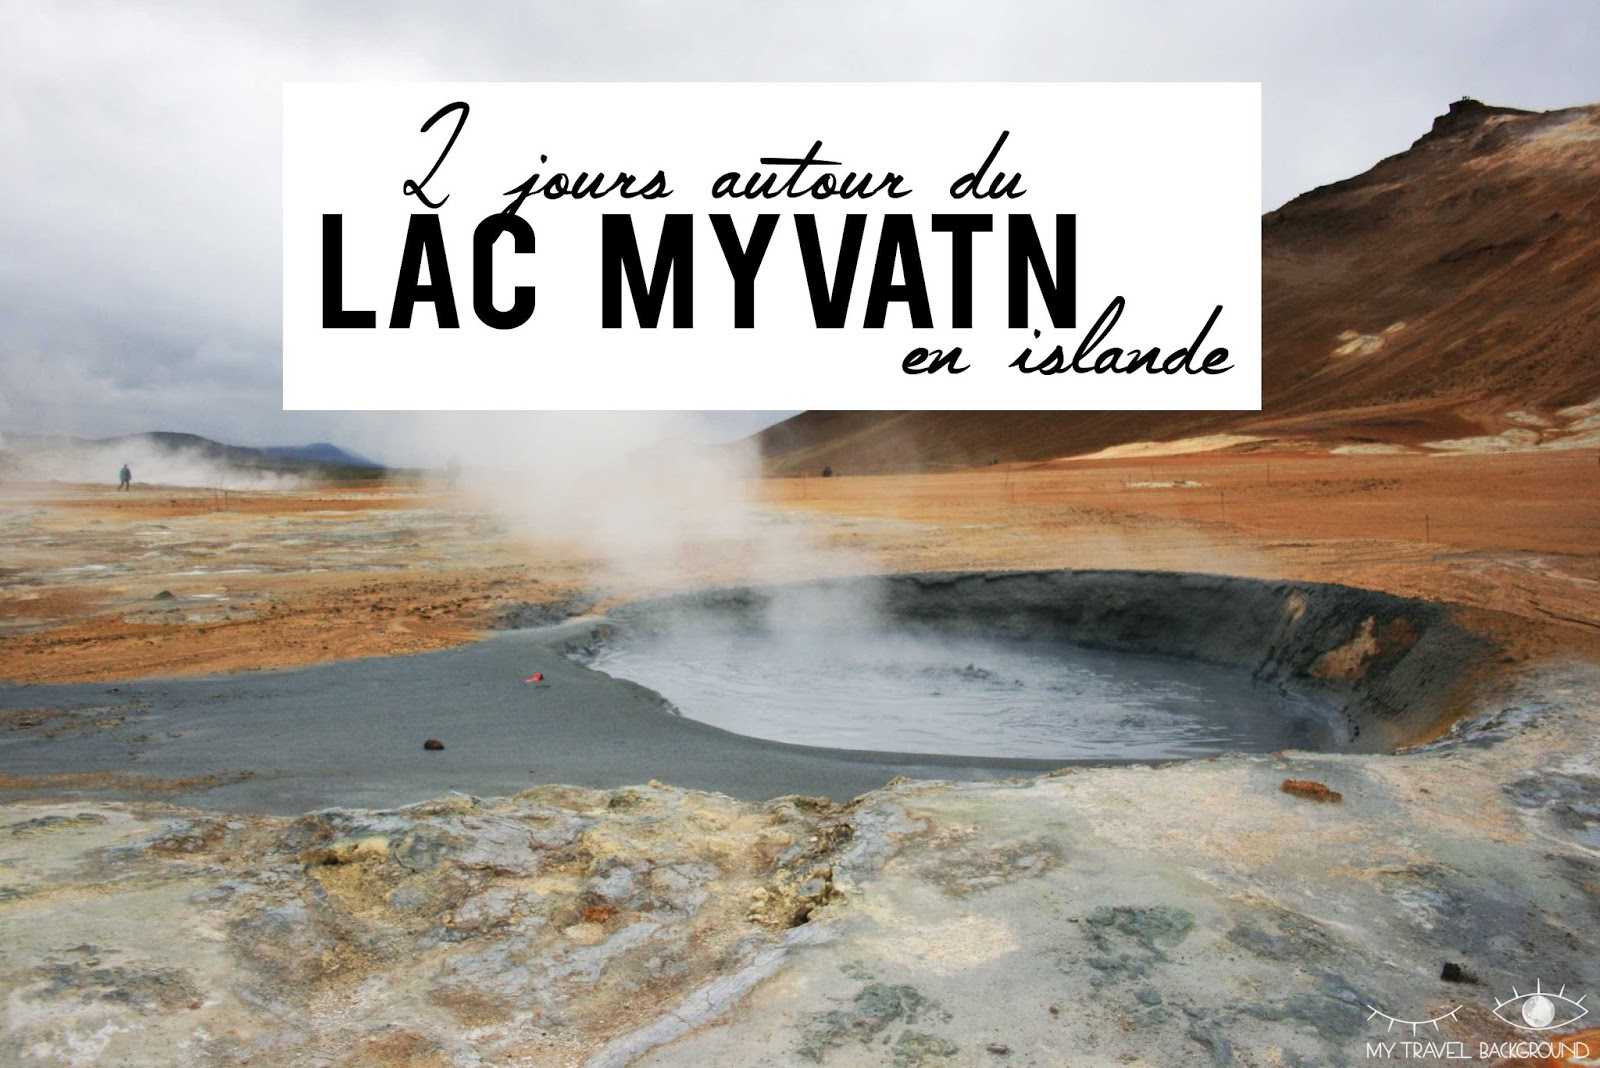 My Travel Background : 2 jours autour du lac Myvatn en Islande